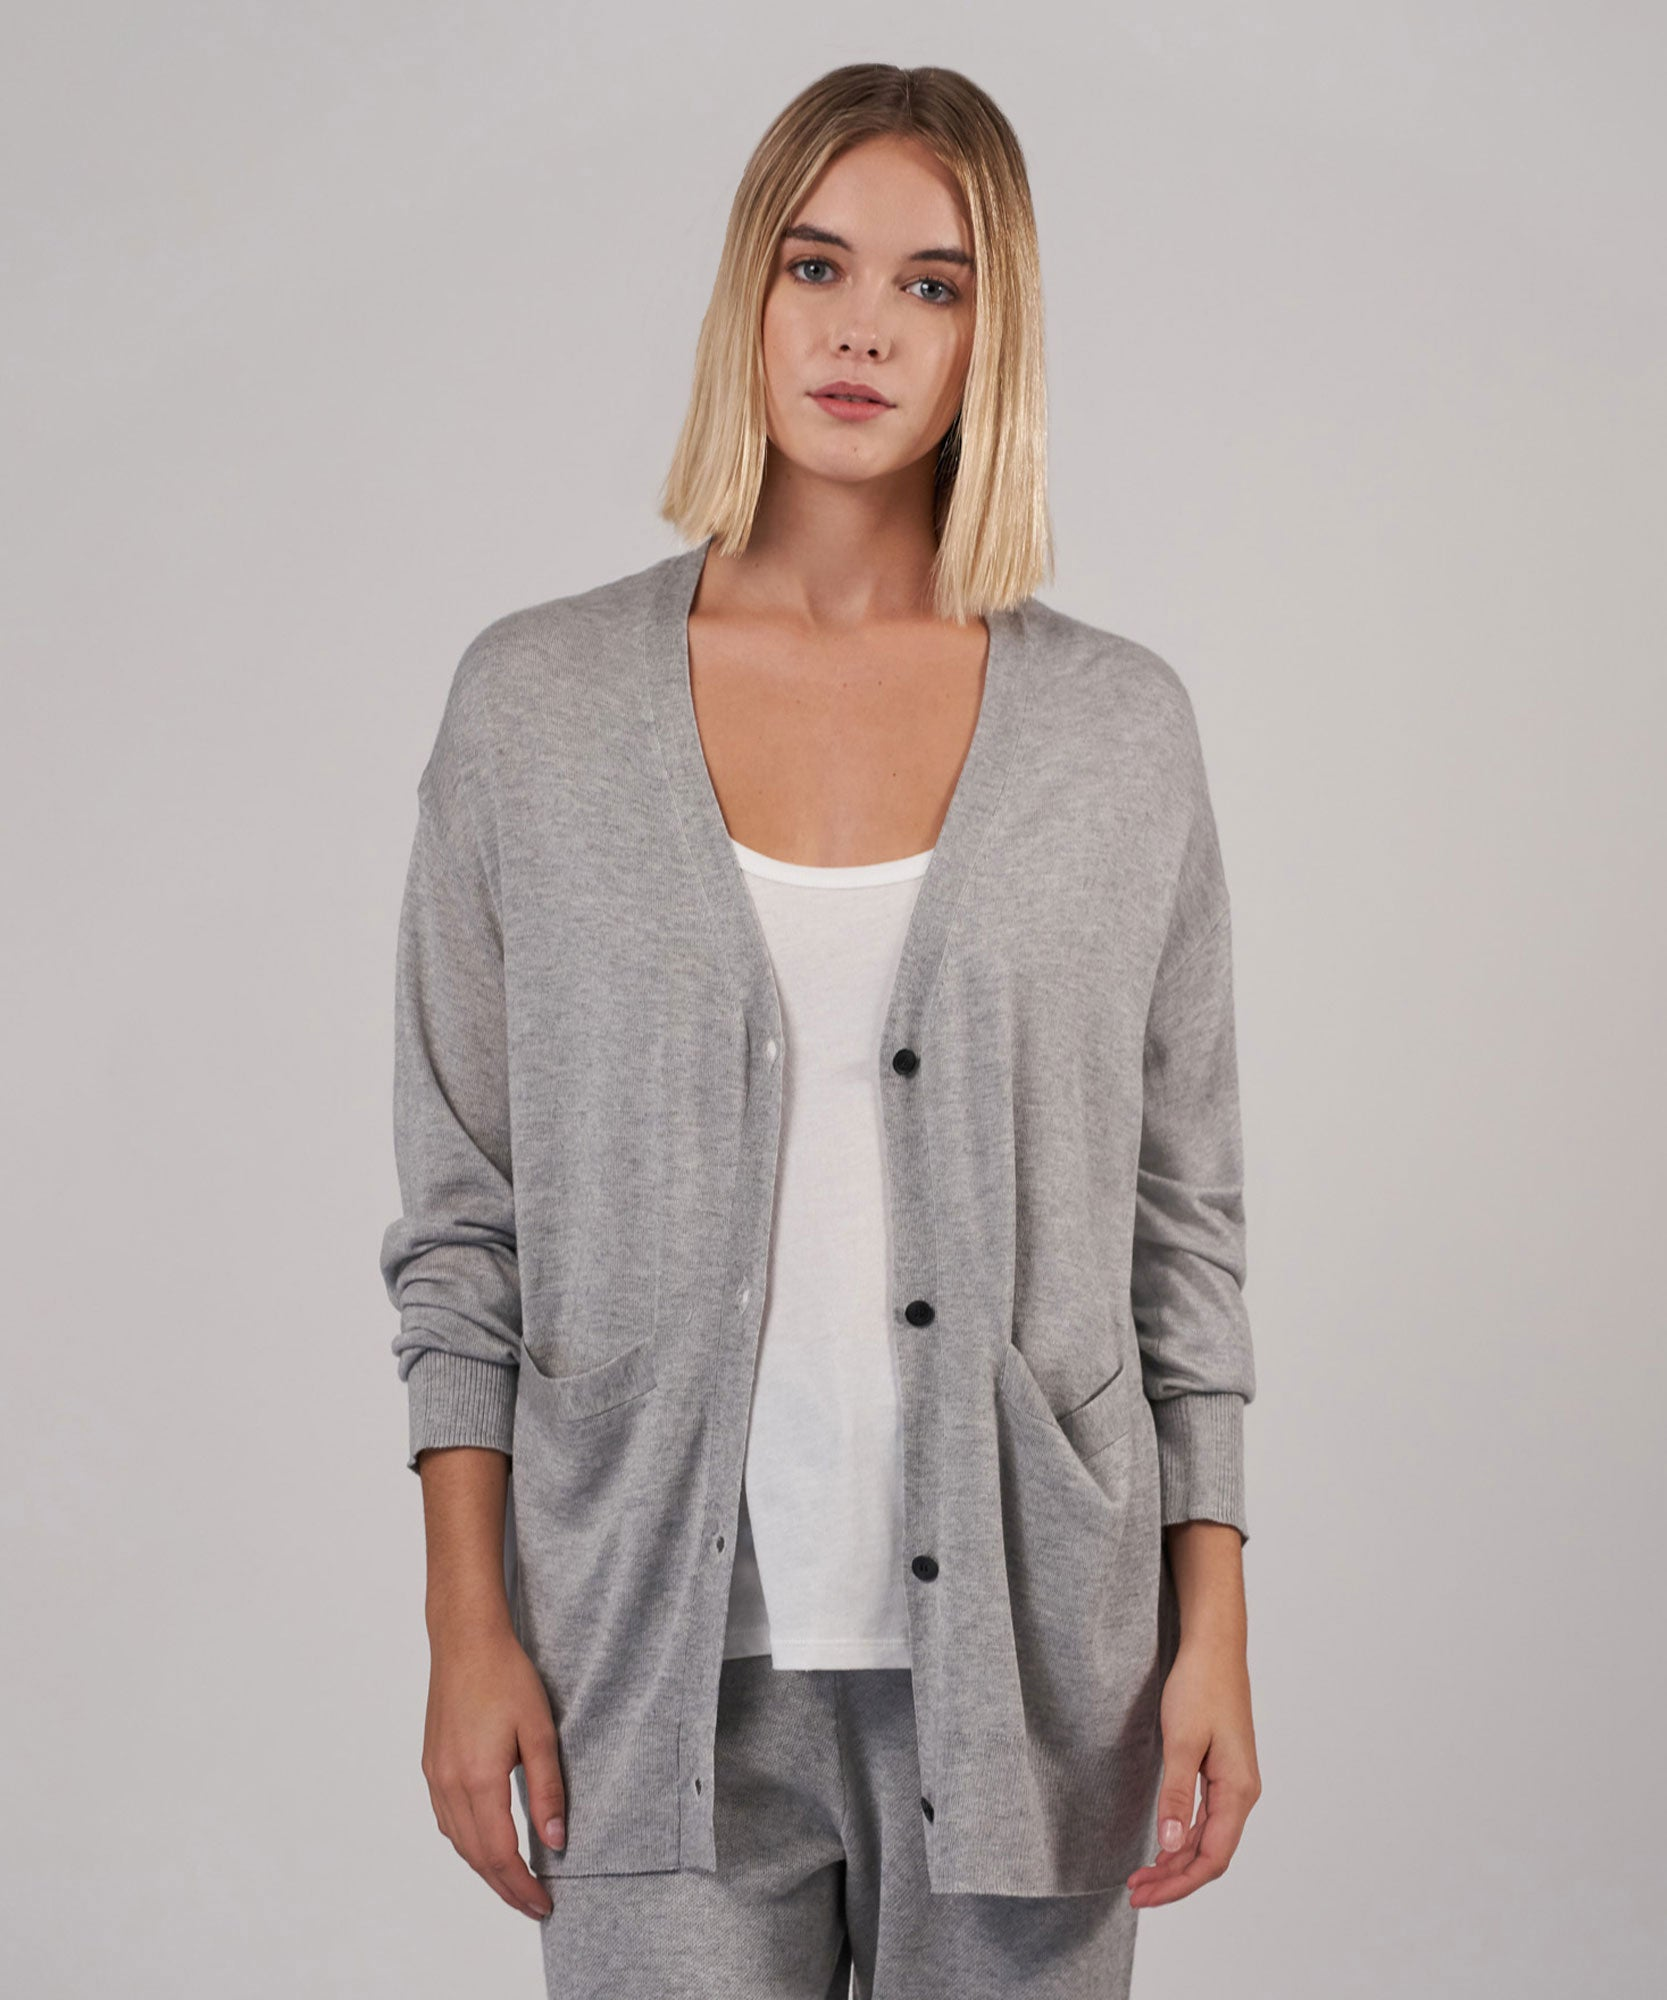 Vapor Cashmere Silk Cardigan - Women's Luxe Sweater by ATM Anthony Thomas Melillo